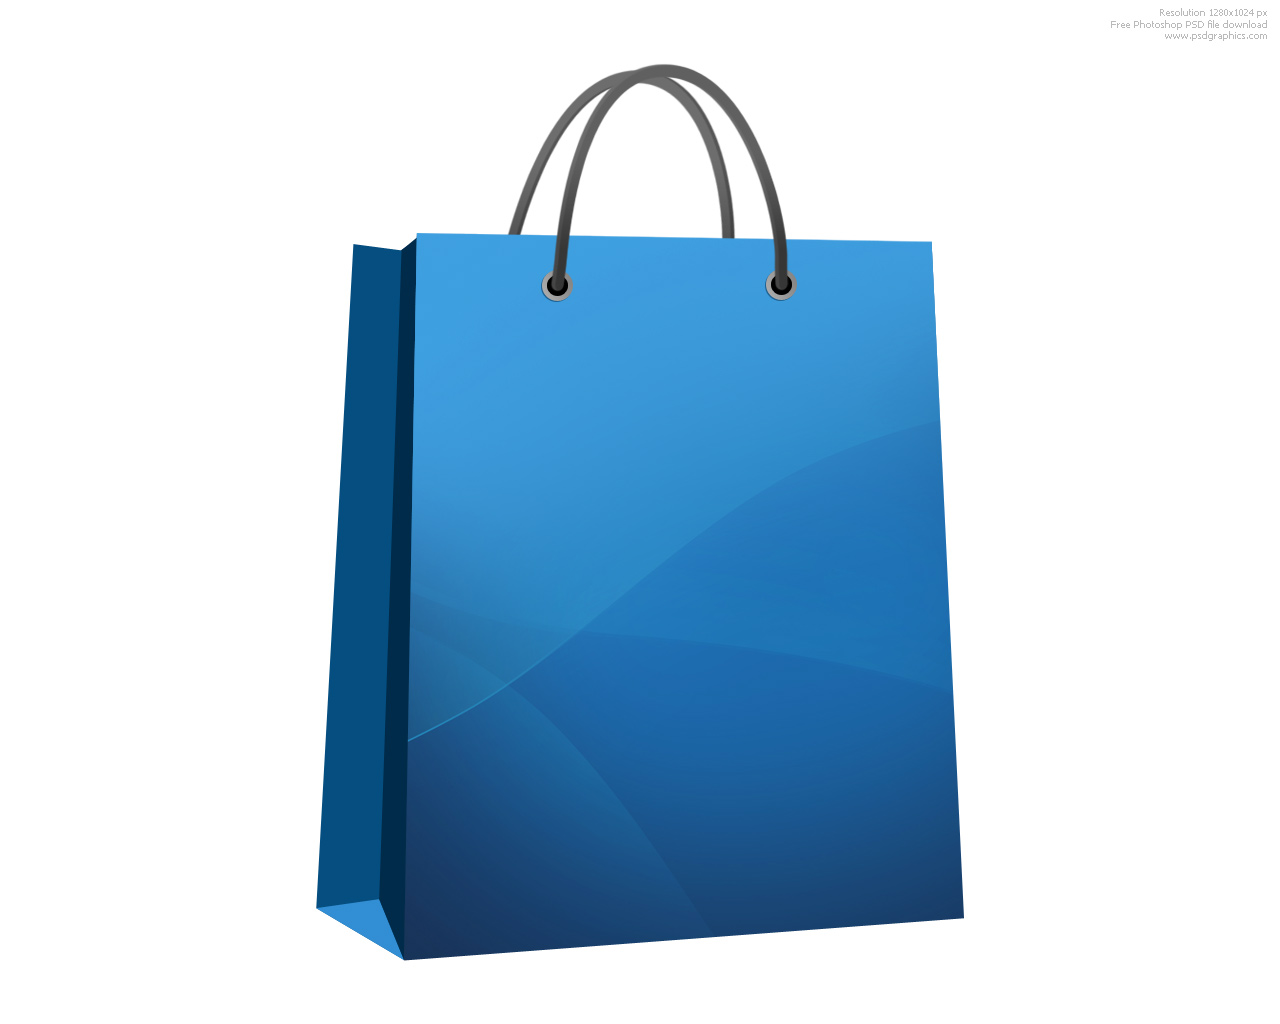 Shopping bags clipart clip art stock Free Pictures Of Shopping Bags, Download Free Clip Art, Free ... clip art stock